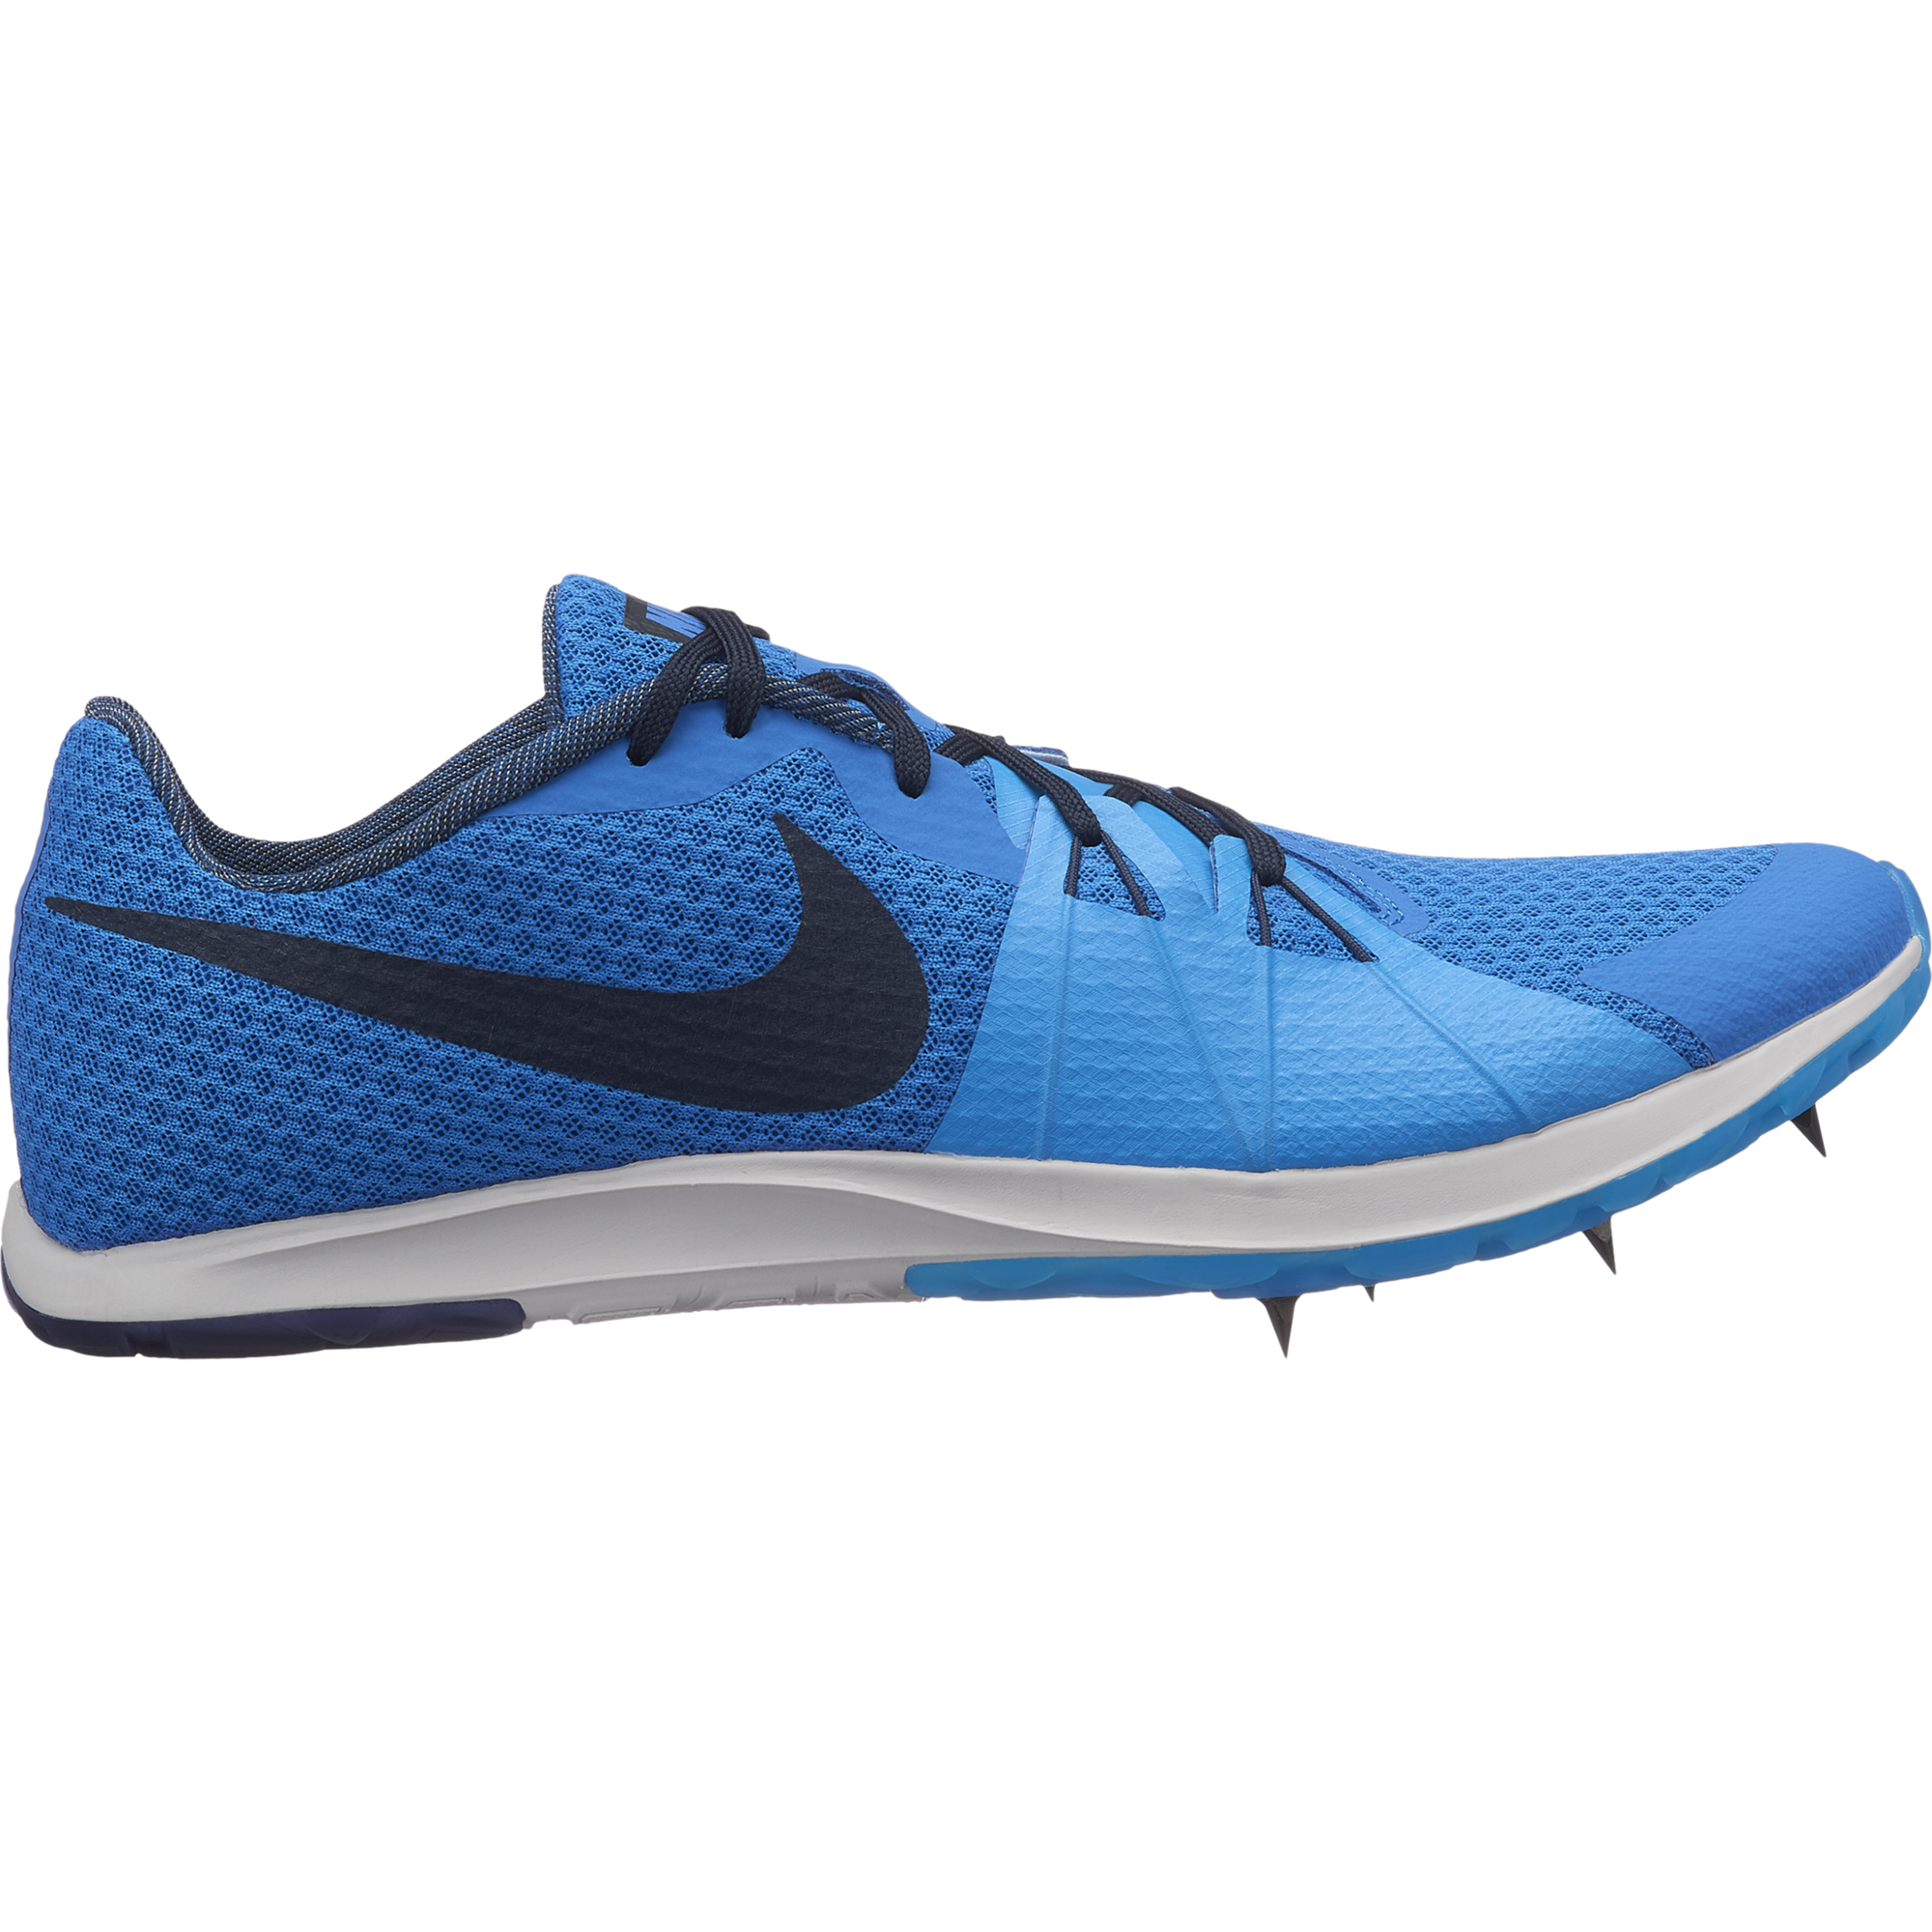 58653d3514b Nike Unisex Zoom Rival XC - Forerunners